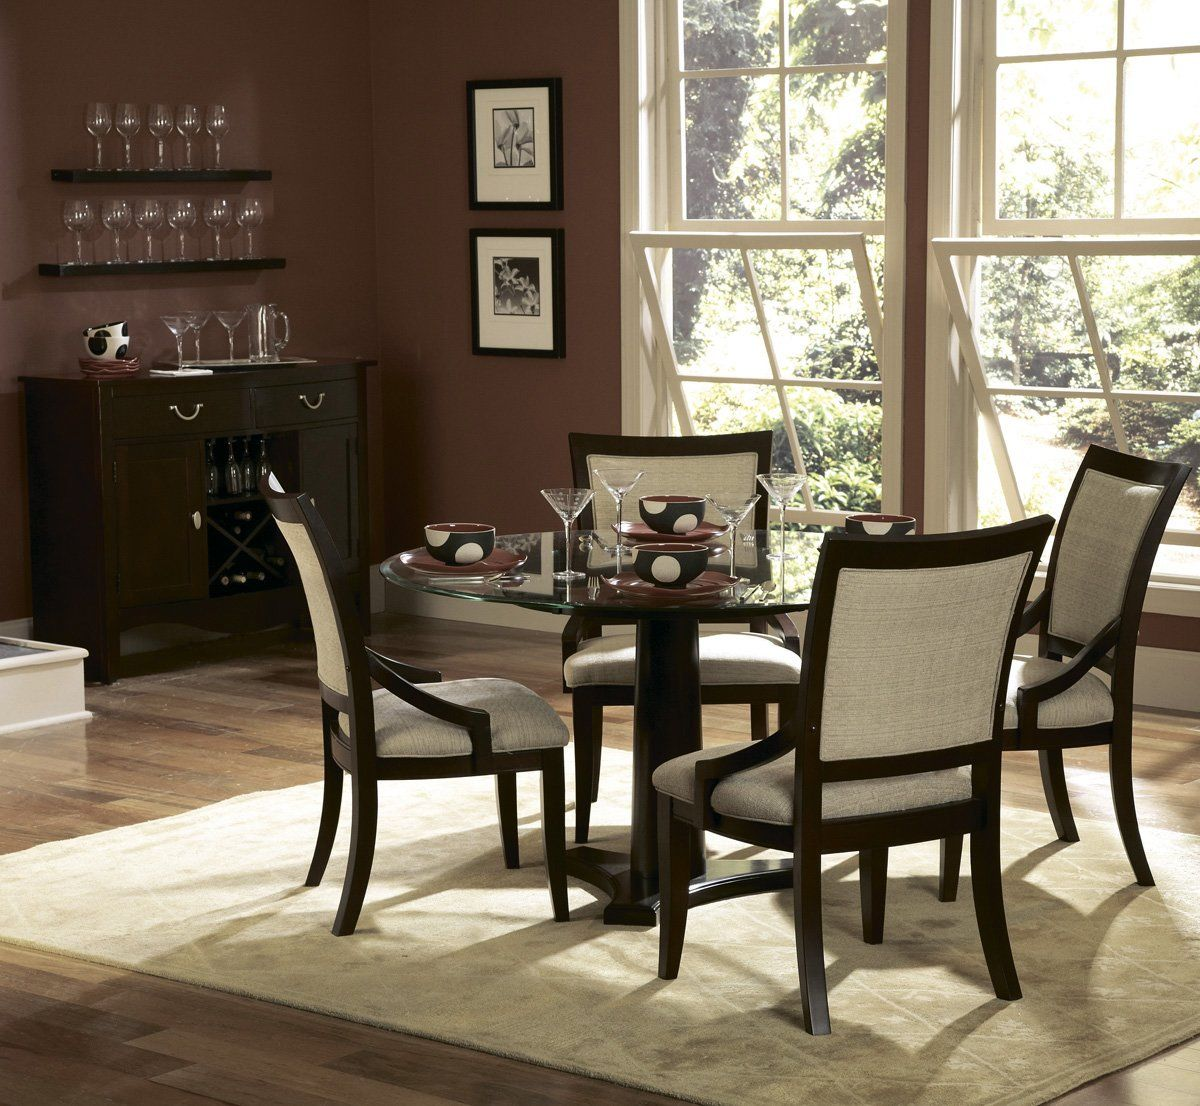 Small round kitchen table  ROUND dining table  For the Home  Pinterest  Round dining table